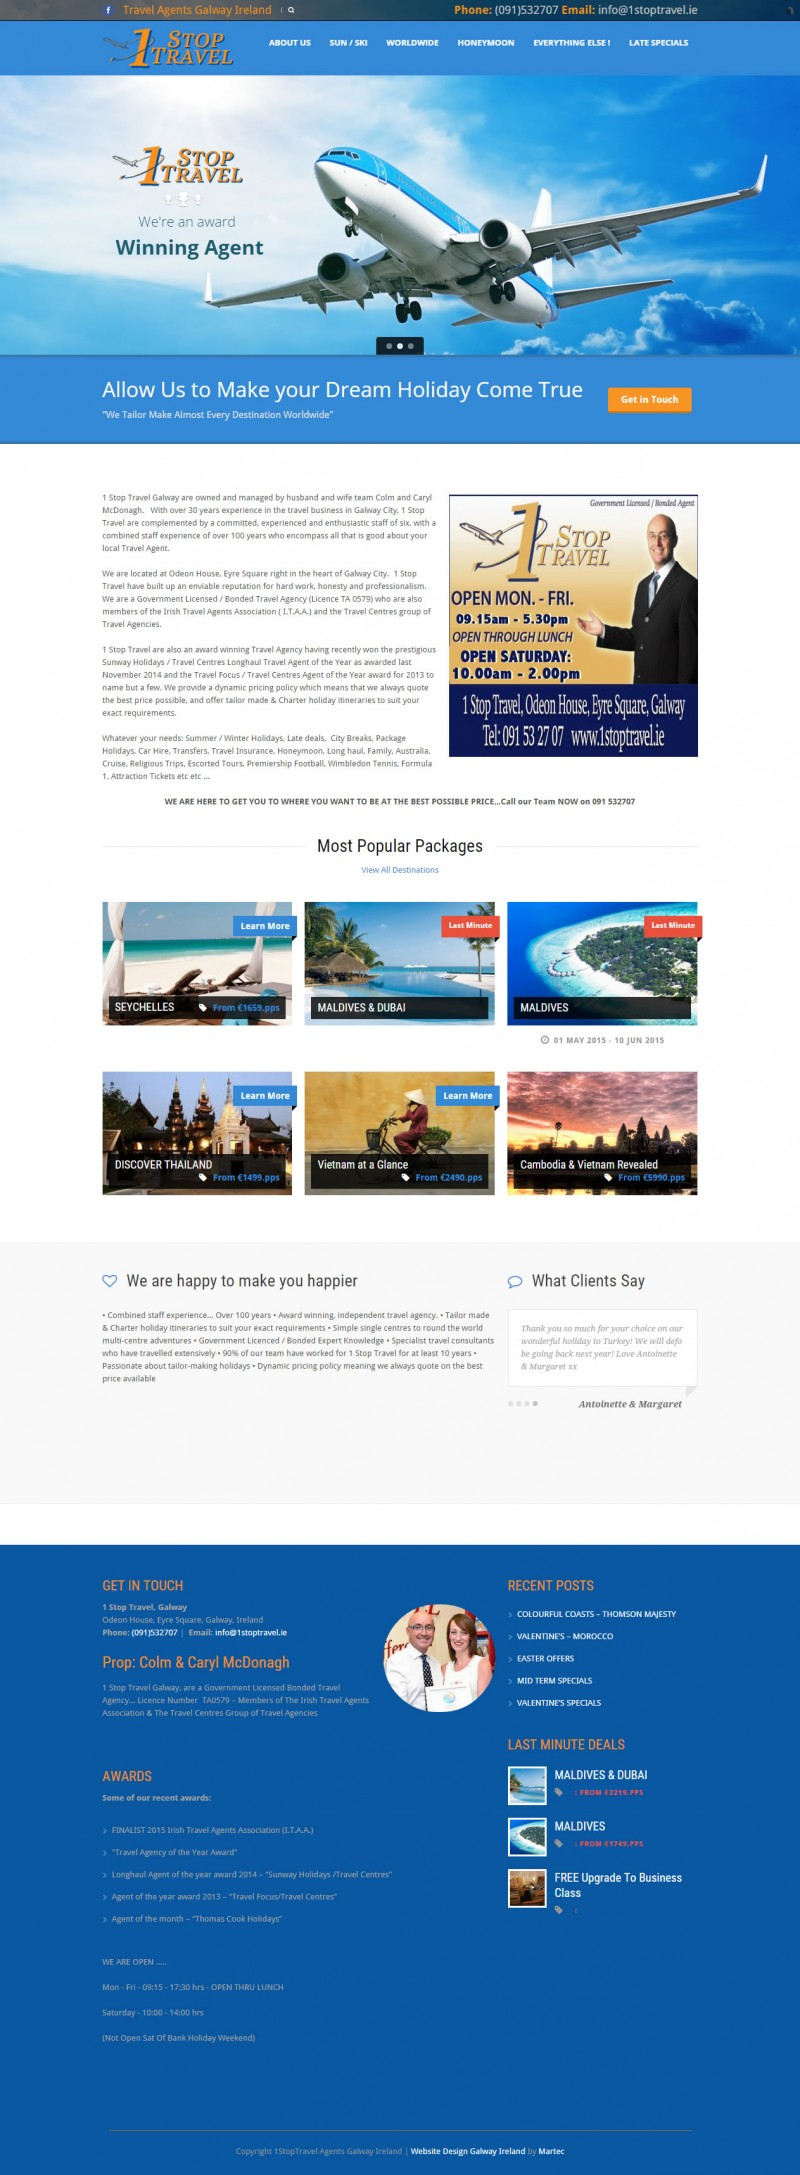 1 Stop Travel Agents Web Design Galway Ireland